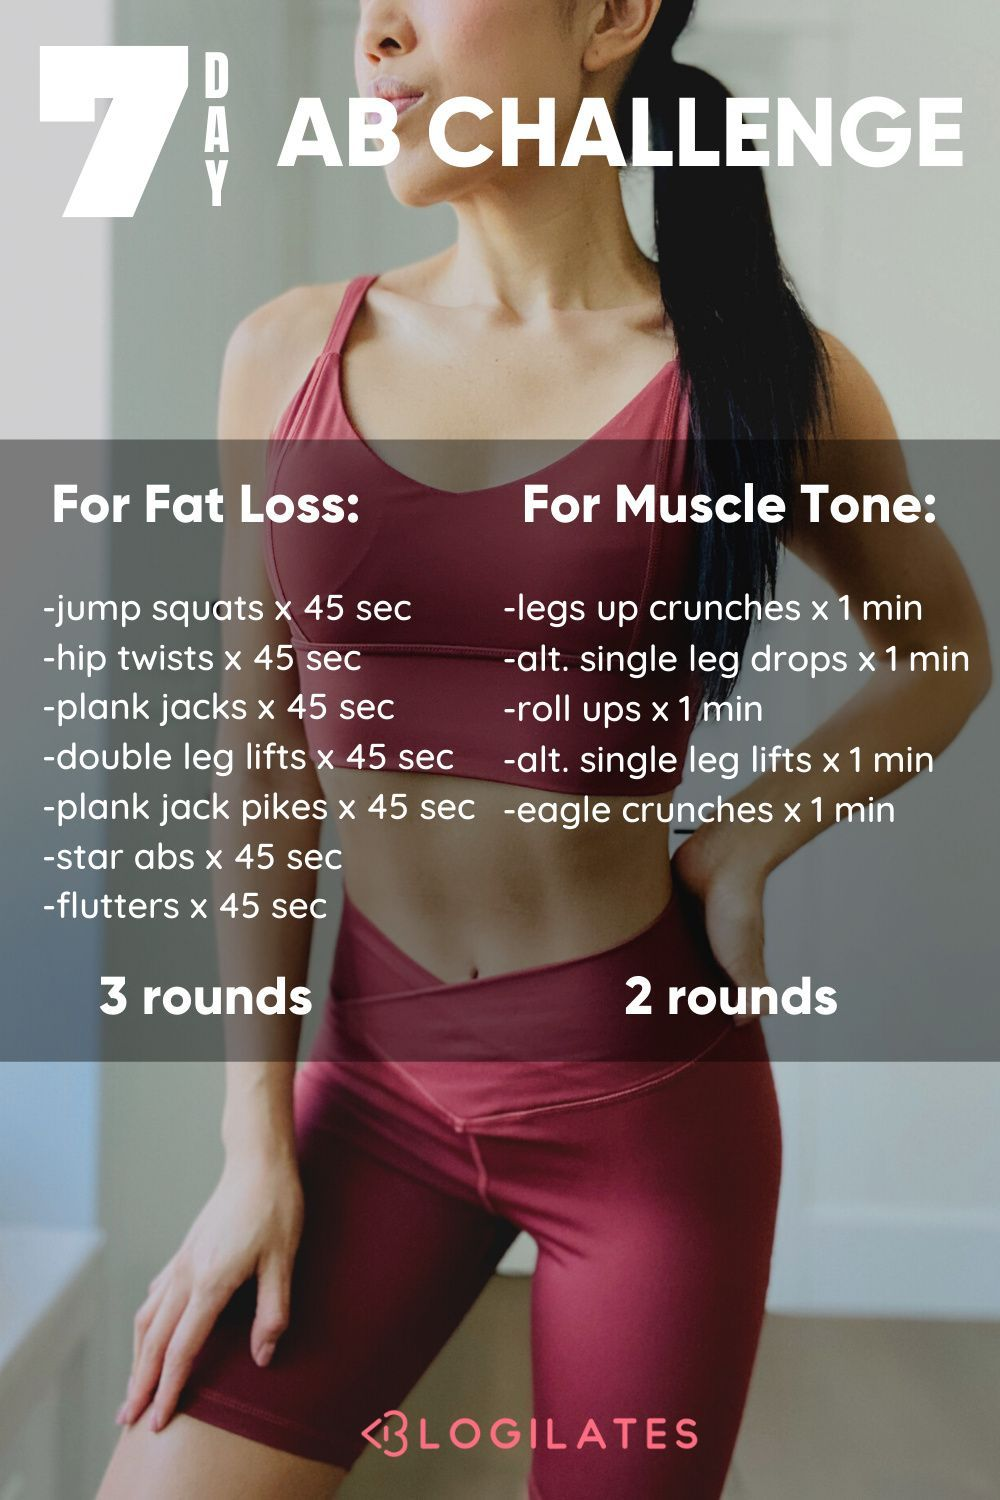 Transform your abs with this easy ab workout challenge in just a week! Try this one week workout challenge and 7 day workout challenge and get ab workouts at home that you can do anywhere! Tap to try the 7 day ab challenge on Blogilates.com.